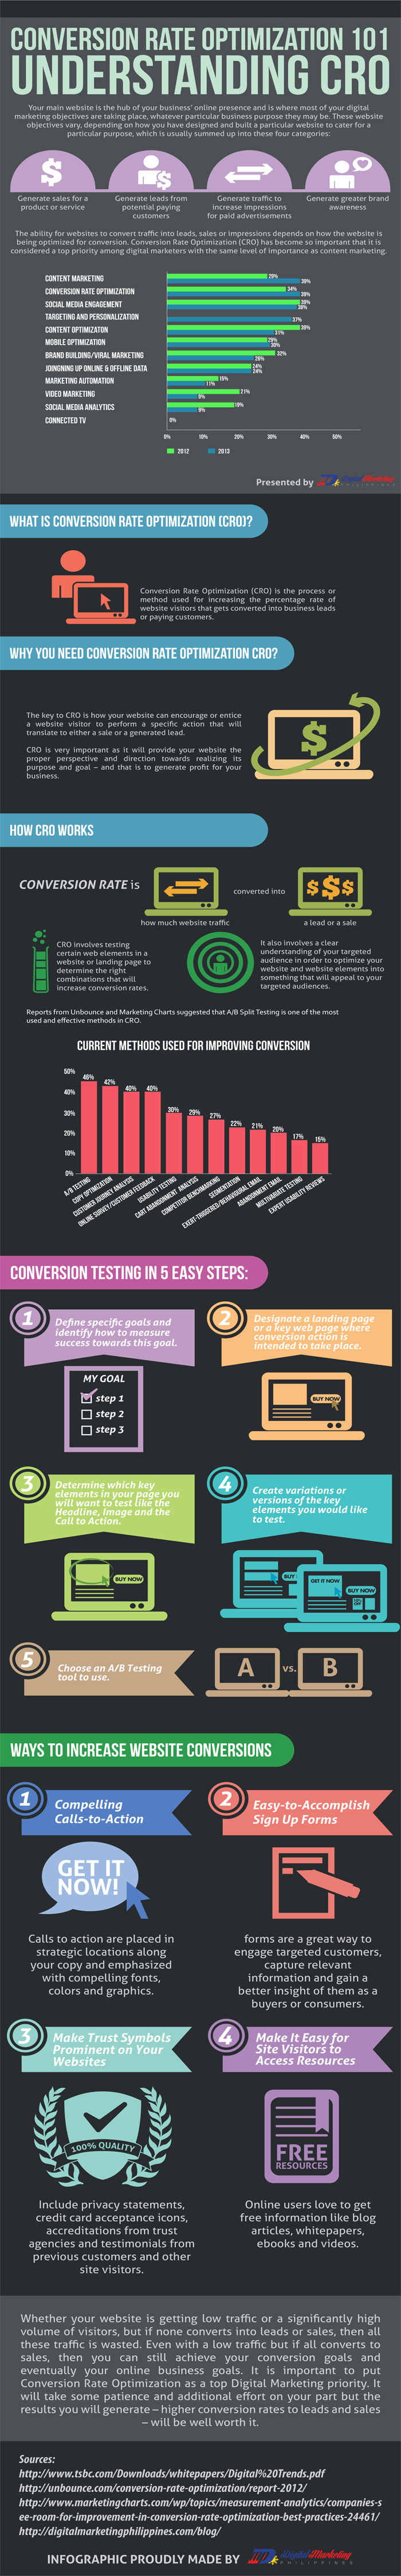 Conversion optimization or Conversion Rate Optimization 101 – Understanding CRO (Infographic) - An Infographic from Digital Marketing Philippines